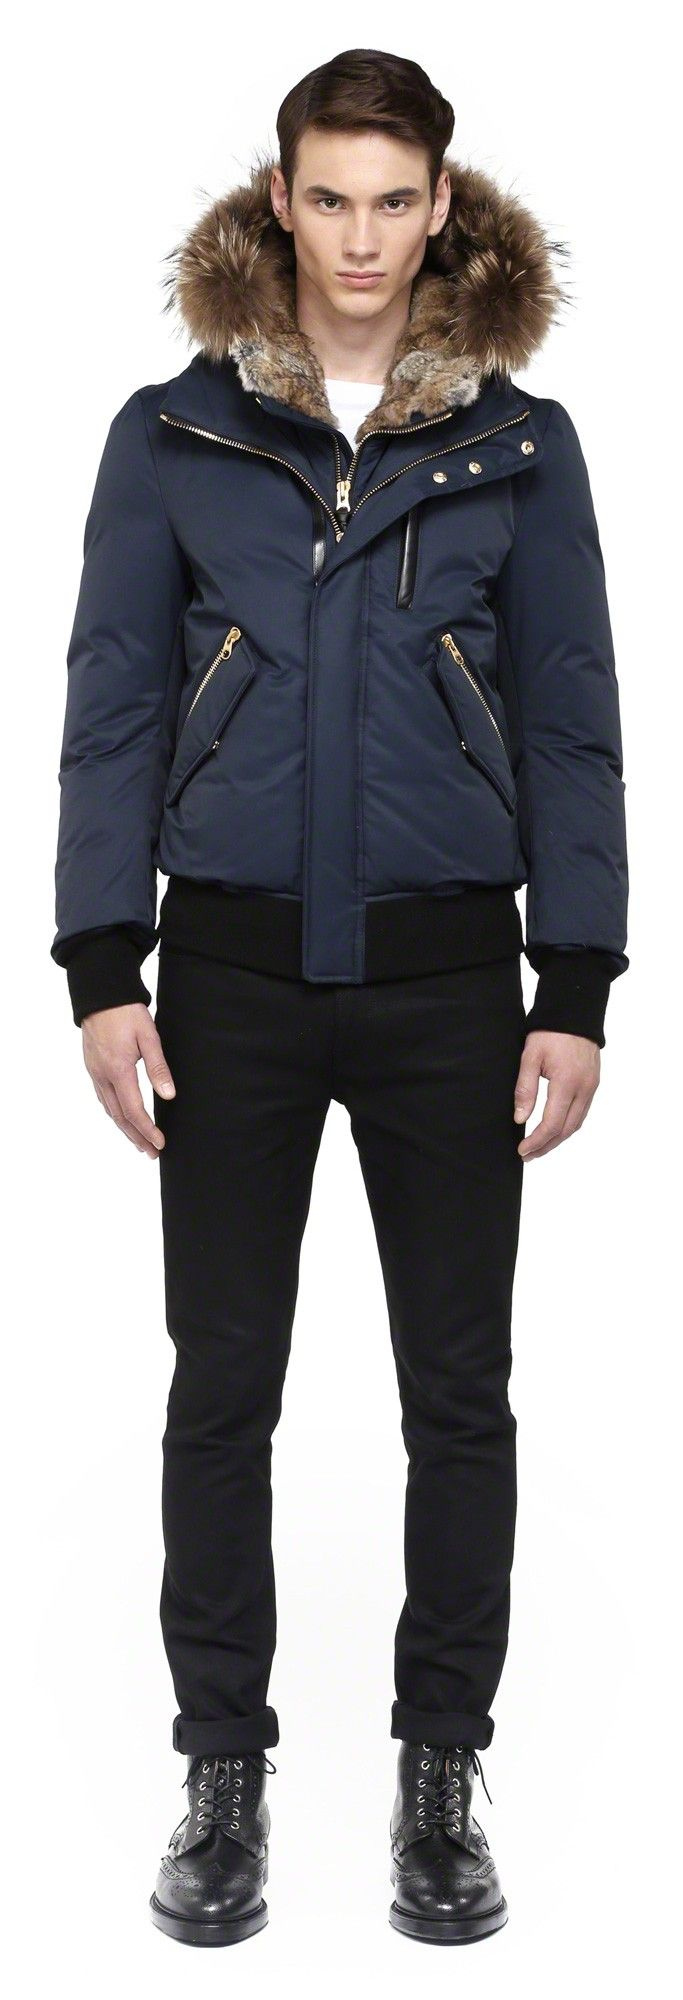 mackage vane jacket how to wear